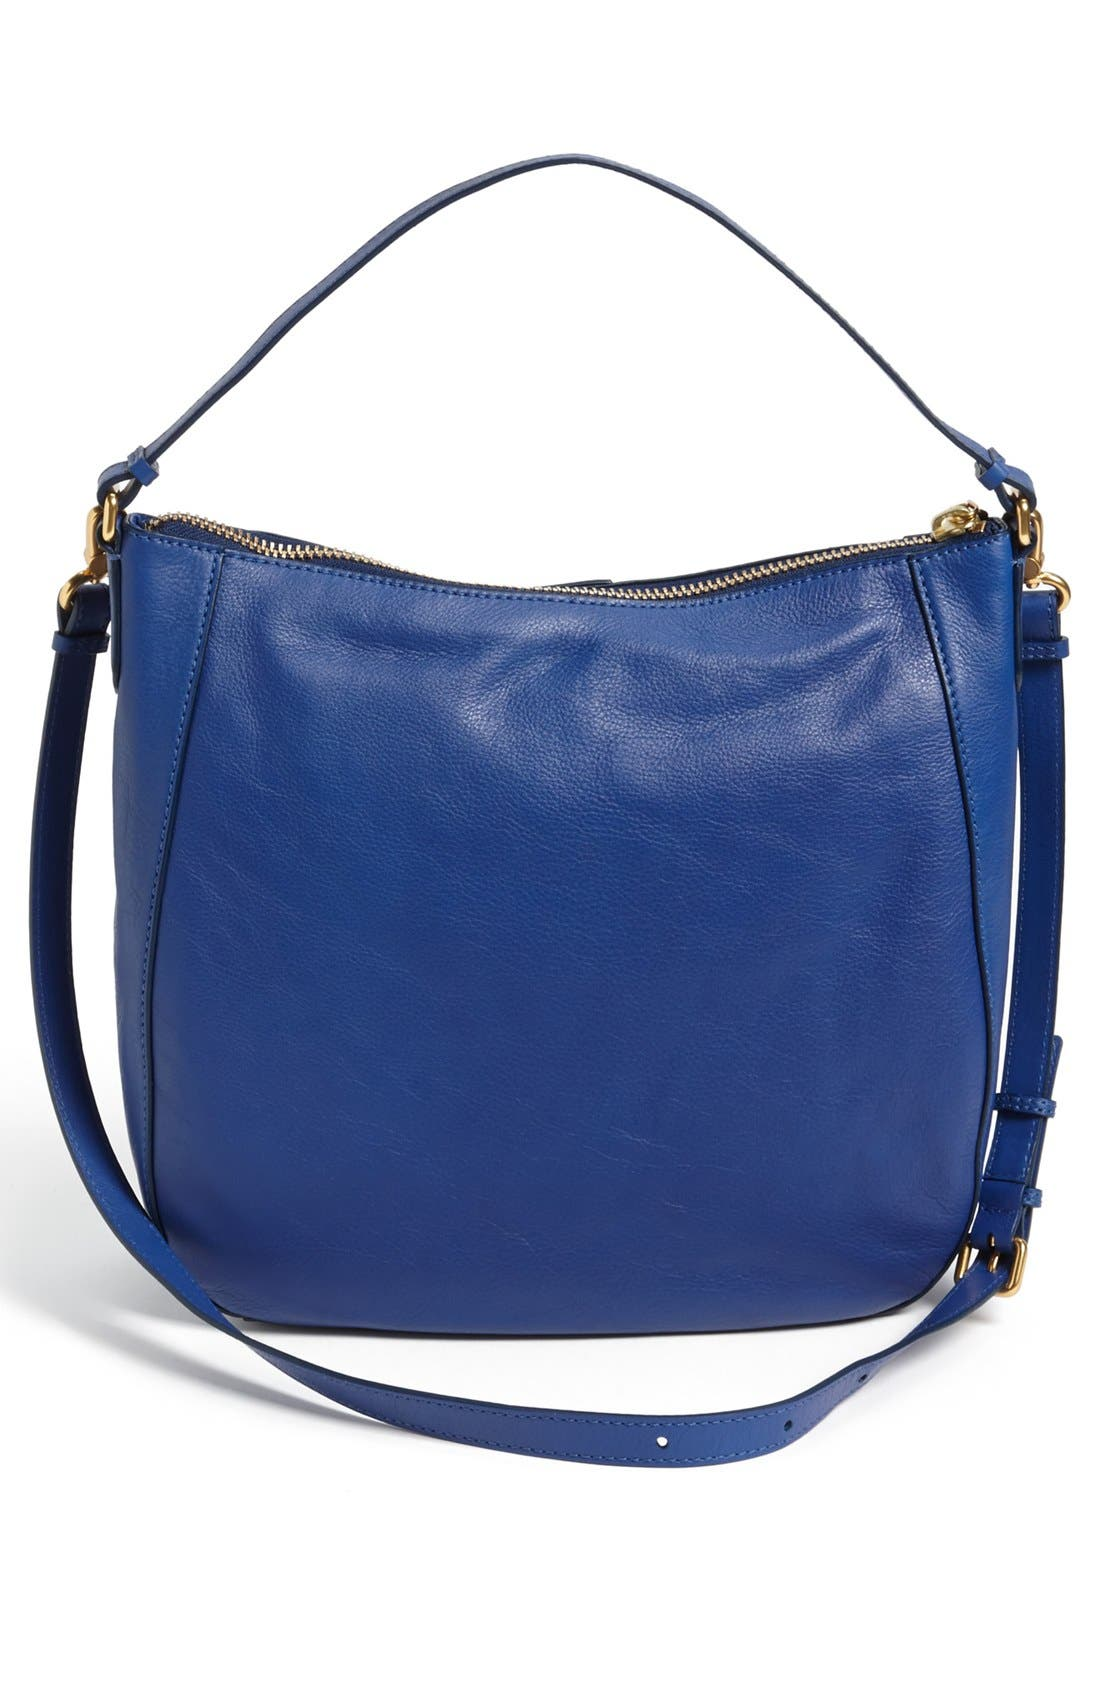 MARC BY MARC JACOBS 'Globetrotter - Kirsten' Leather Satchel,                             Alternate thumbnail 4, color,